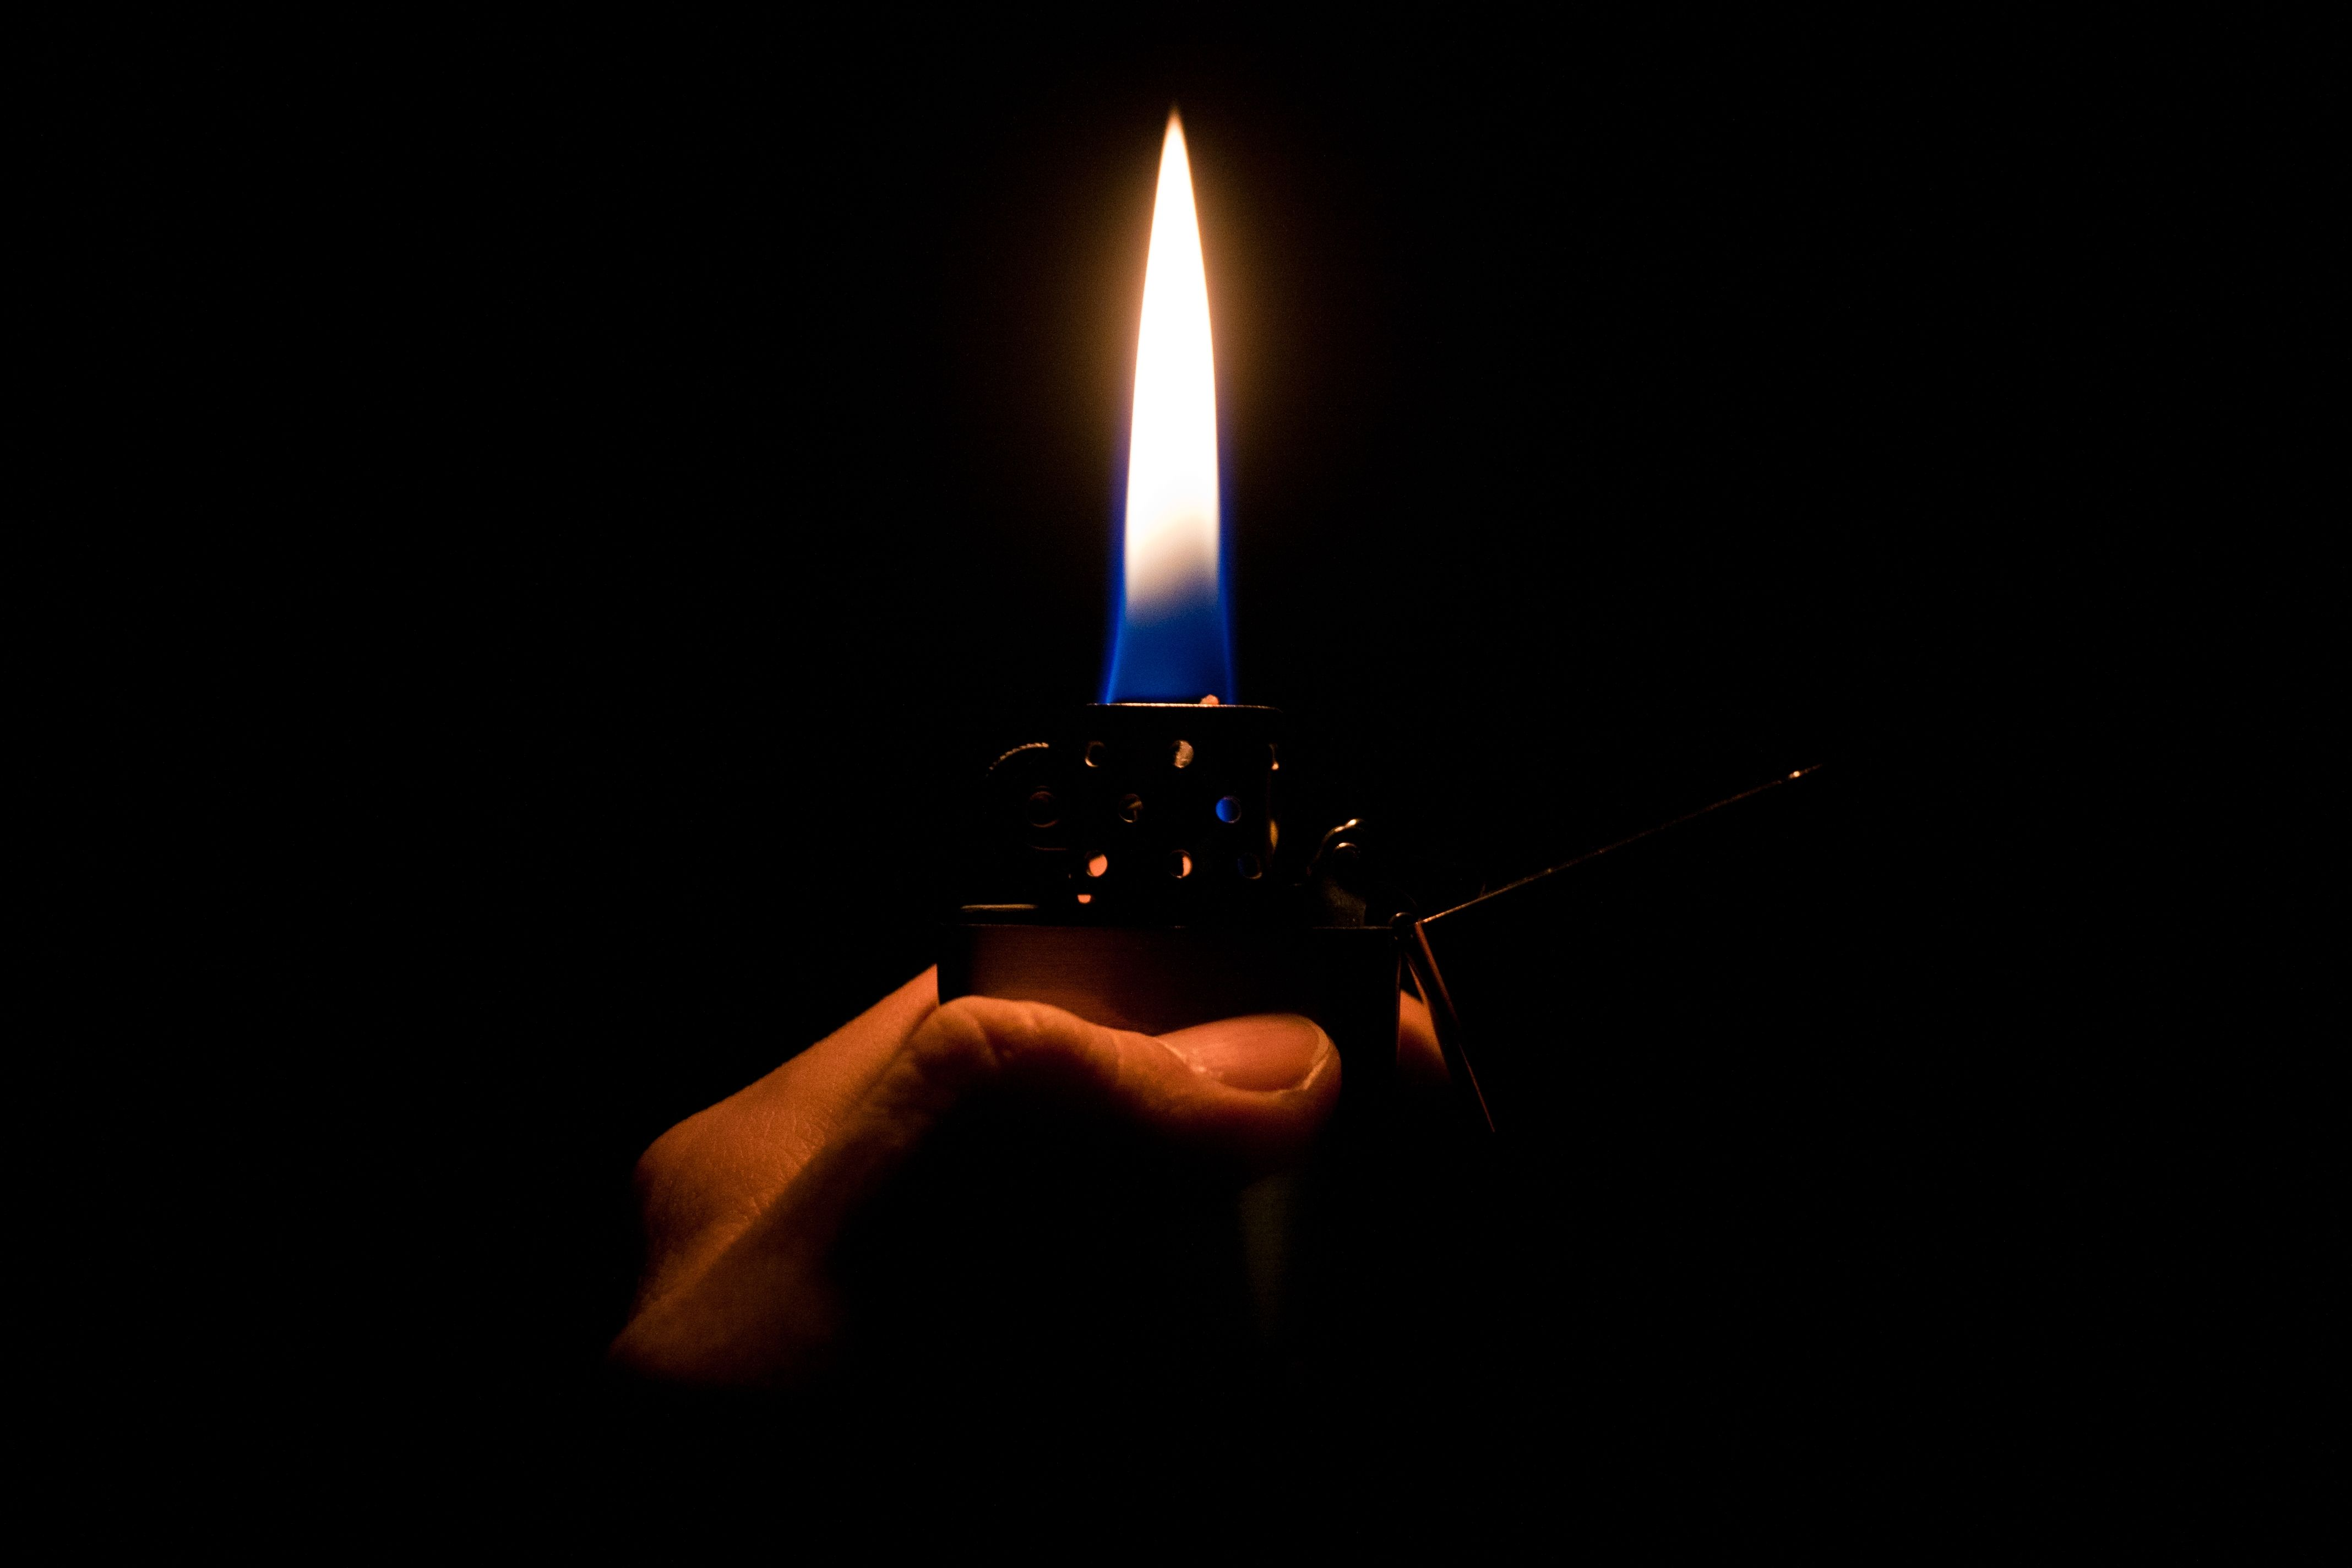 Zippo 4 Lighter Wallpaper Iphone 7 Check Awesome Top